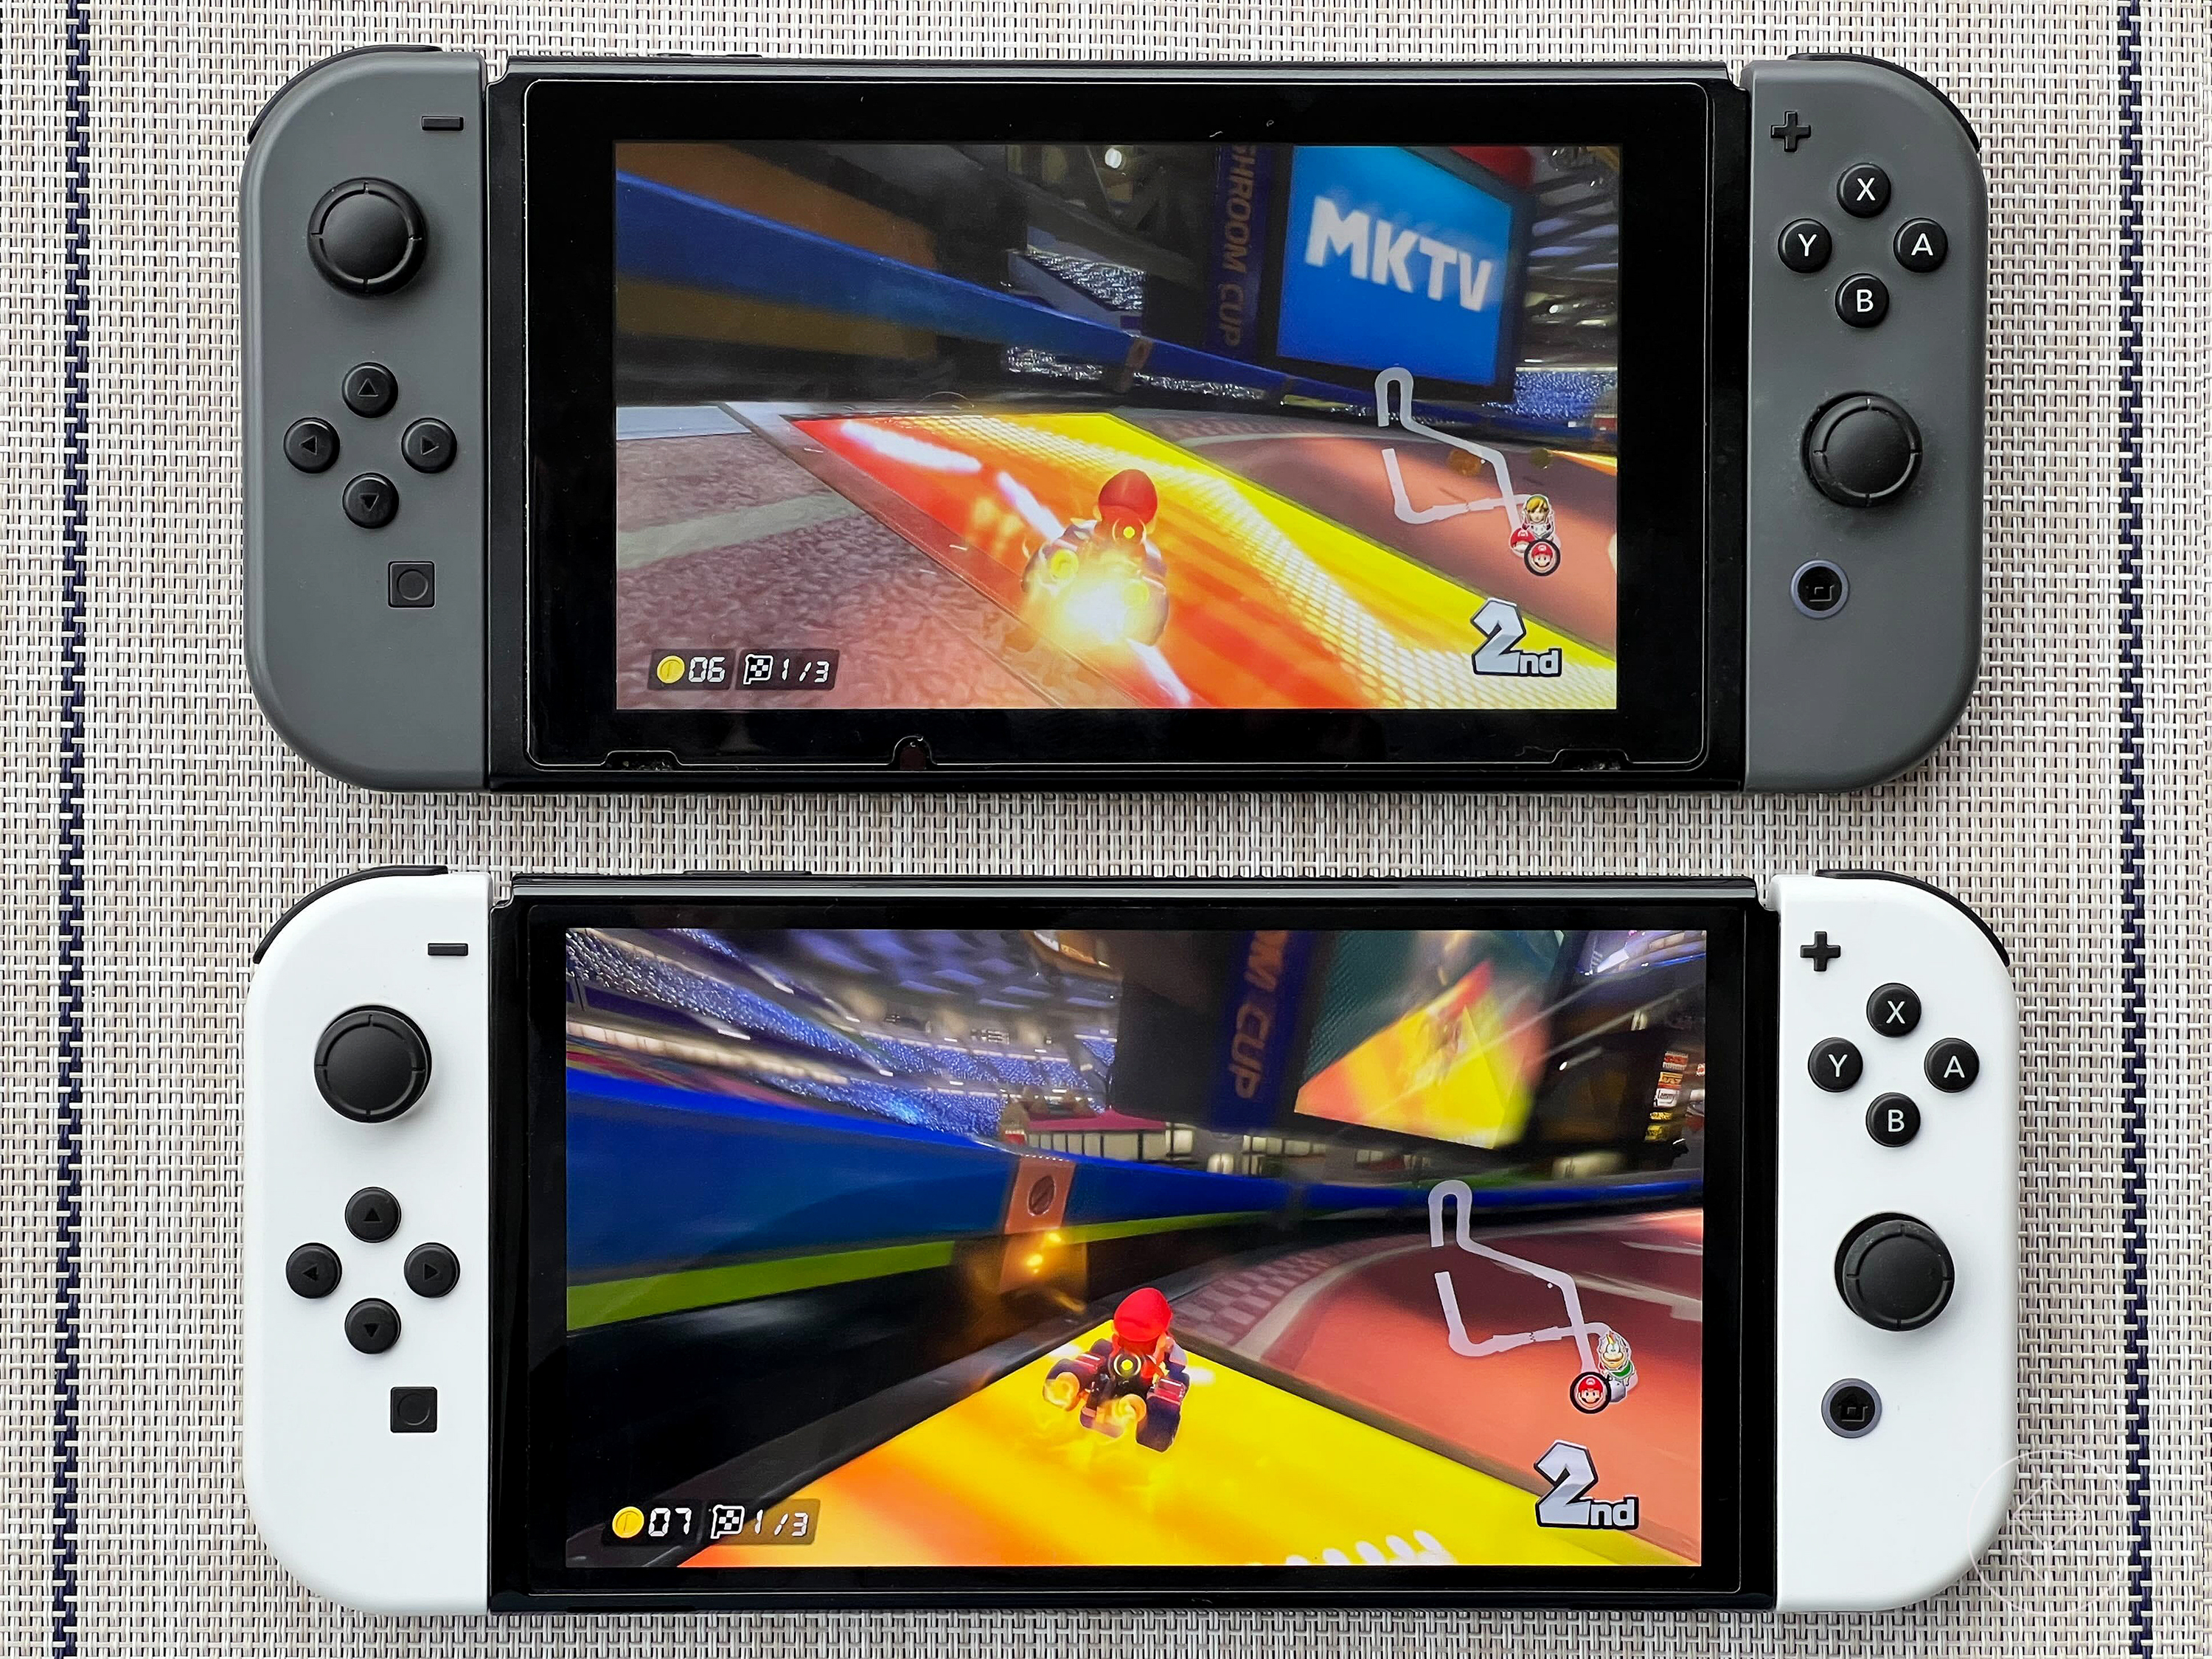 a photo of the original Switch (with dark gray Joy-Cons) above the OLED Switch (with white Joy-Cons), with Mario Kart 8 Deluxe running on both systems